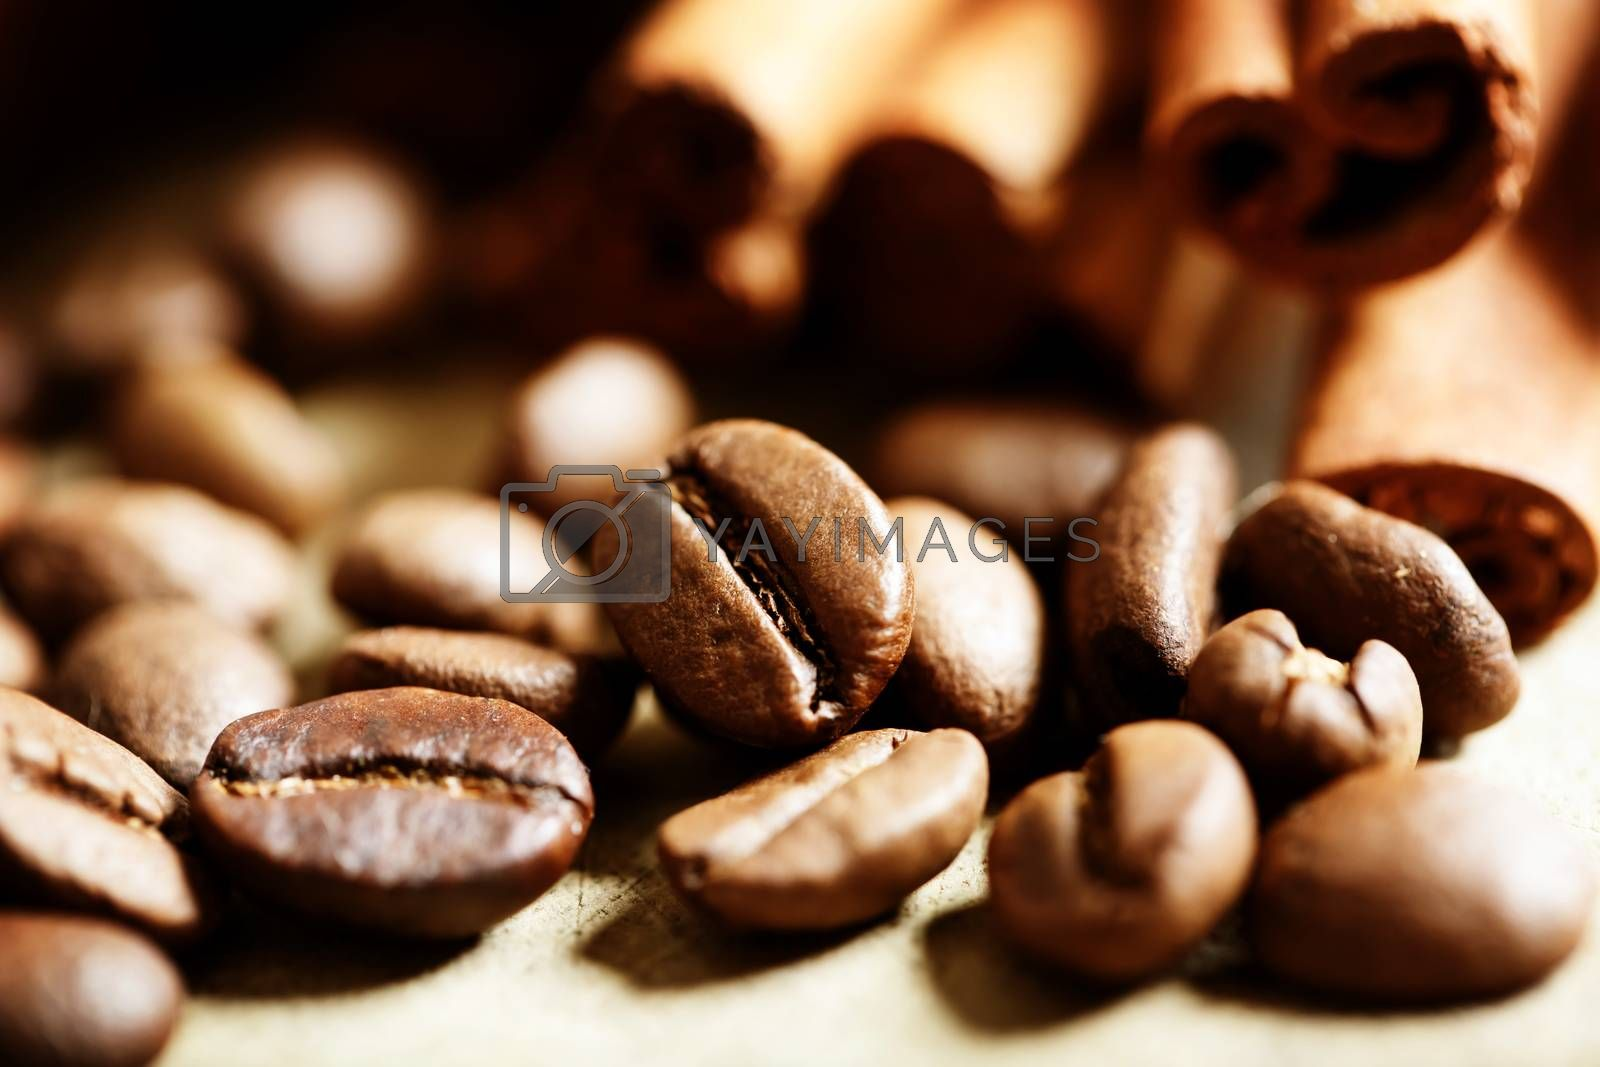 Royalty free image of Coffee beans with cinnamon sticks by melpomene